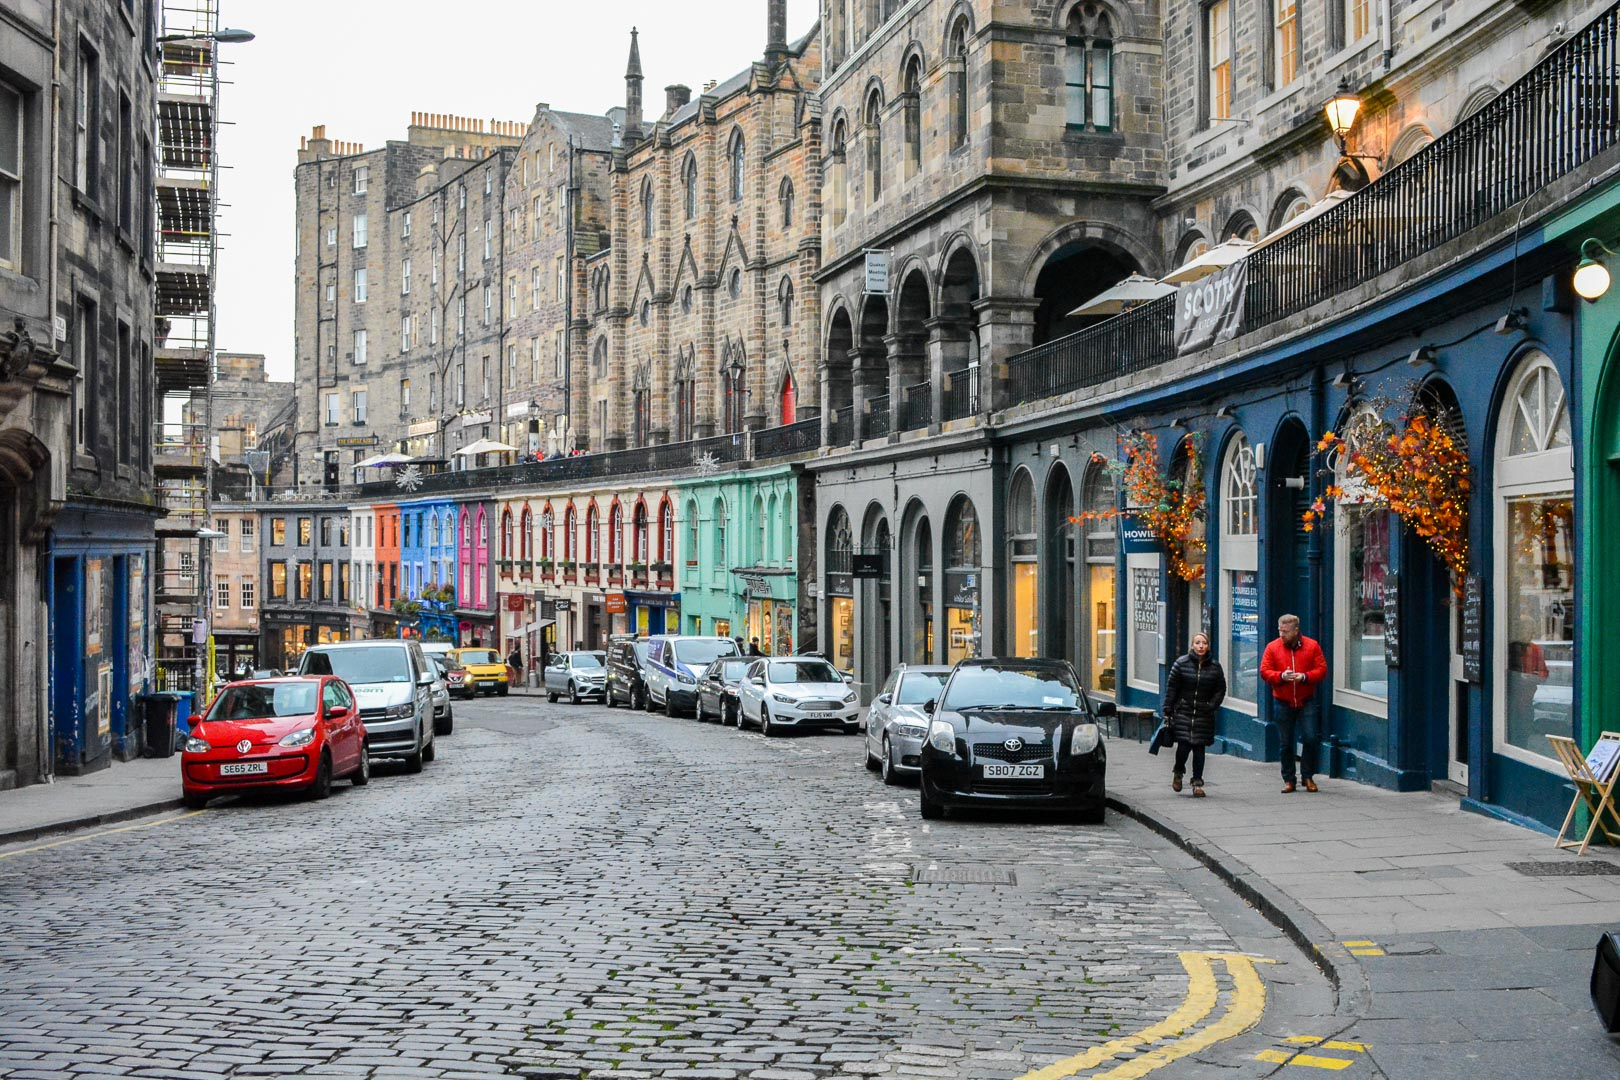 Victoria Street, the inspiration for Diagon Alley!